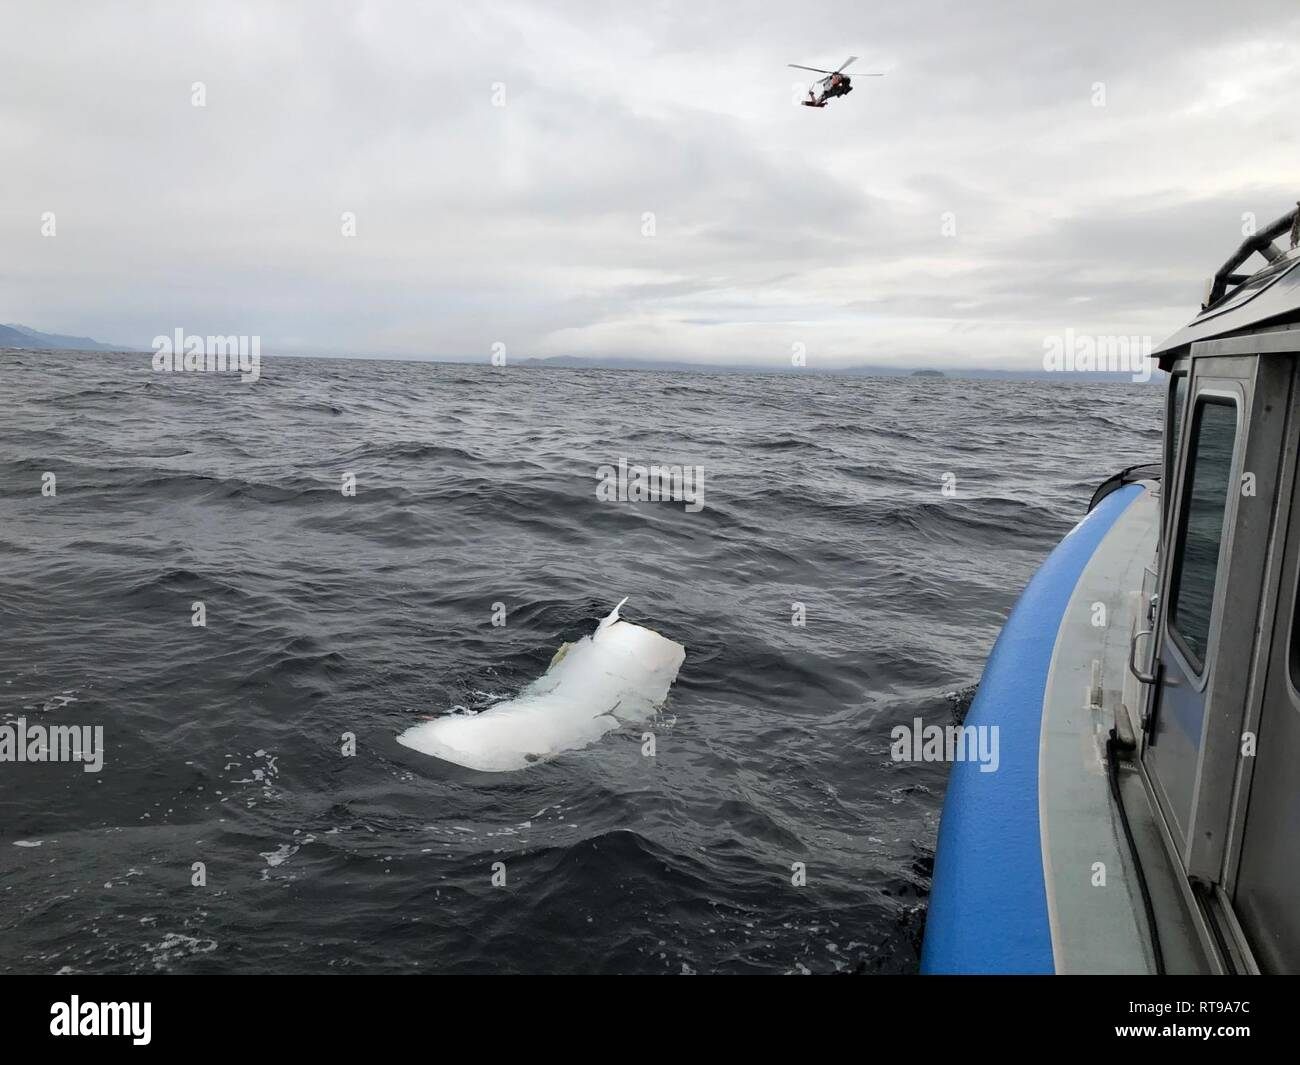 A Coast Guard Air Station Sitka MH-60 Jayhawk helicopter crew flies over a piece of debris spotted by Alaska Wildlife Troopers while searching for three people aboard an overdue Guardian Life Flight aircraft 20-miles west of Kake, Alaska, Jan. 30, 2019. Coast Guard Cutters Anacapa and Bailey Barco, along with an Alaska Army National Guard, several search and rescue teams and good Samaritans began searching for the aircraft and three people aboard after it did not arrive as scheduled to Kake Jan. 29, 2019, to retrieve a patient for transport. - Stock Image